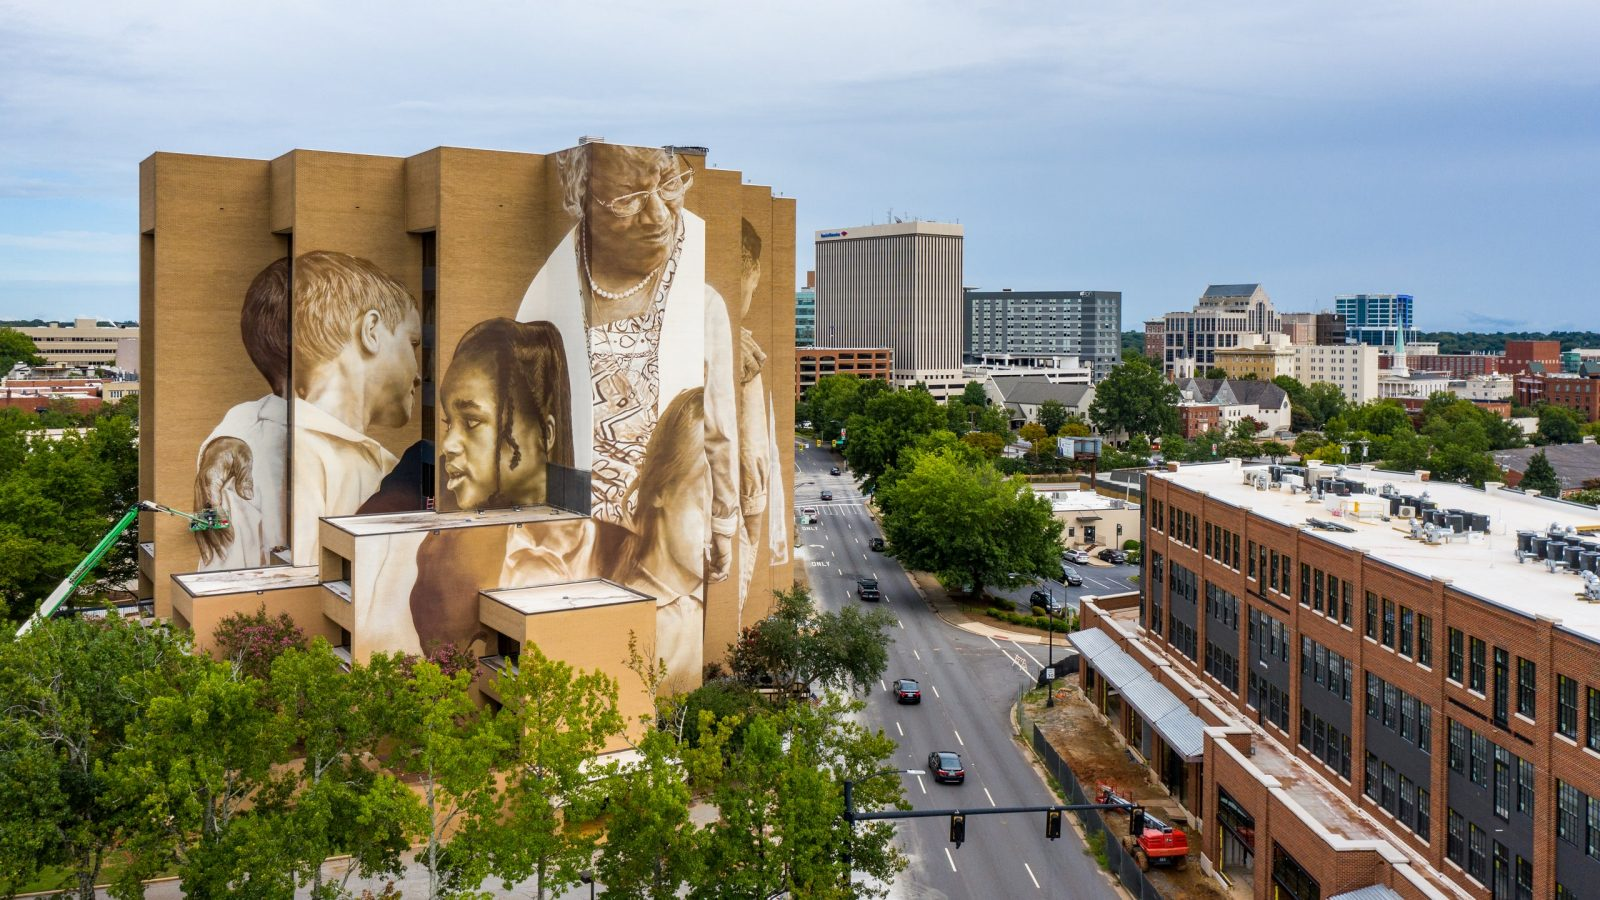 Pearlie Harris mural on Canvas Tower in Greenville, S.C. Photo courtesy of the Beach Company.